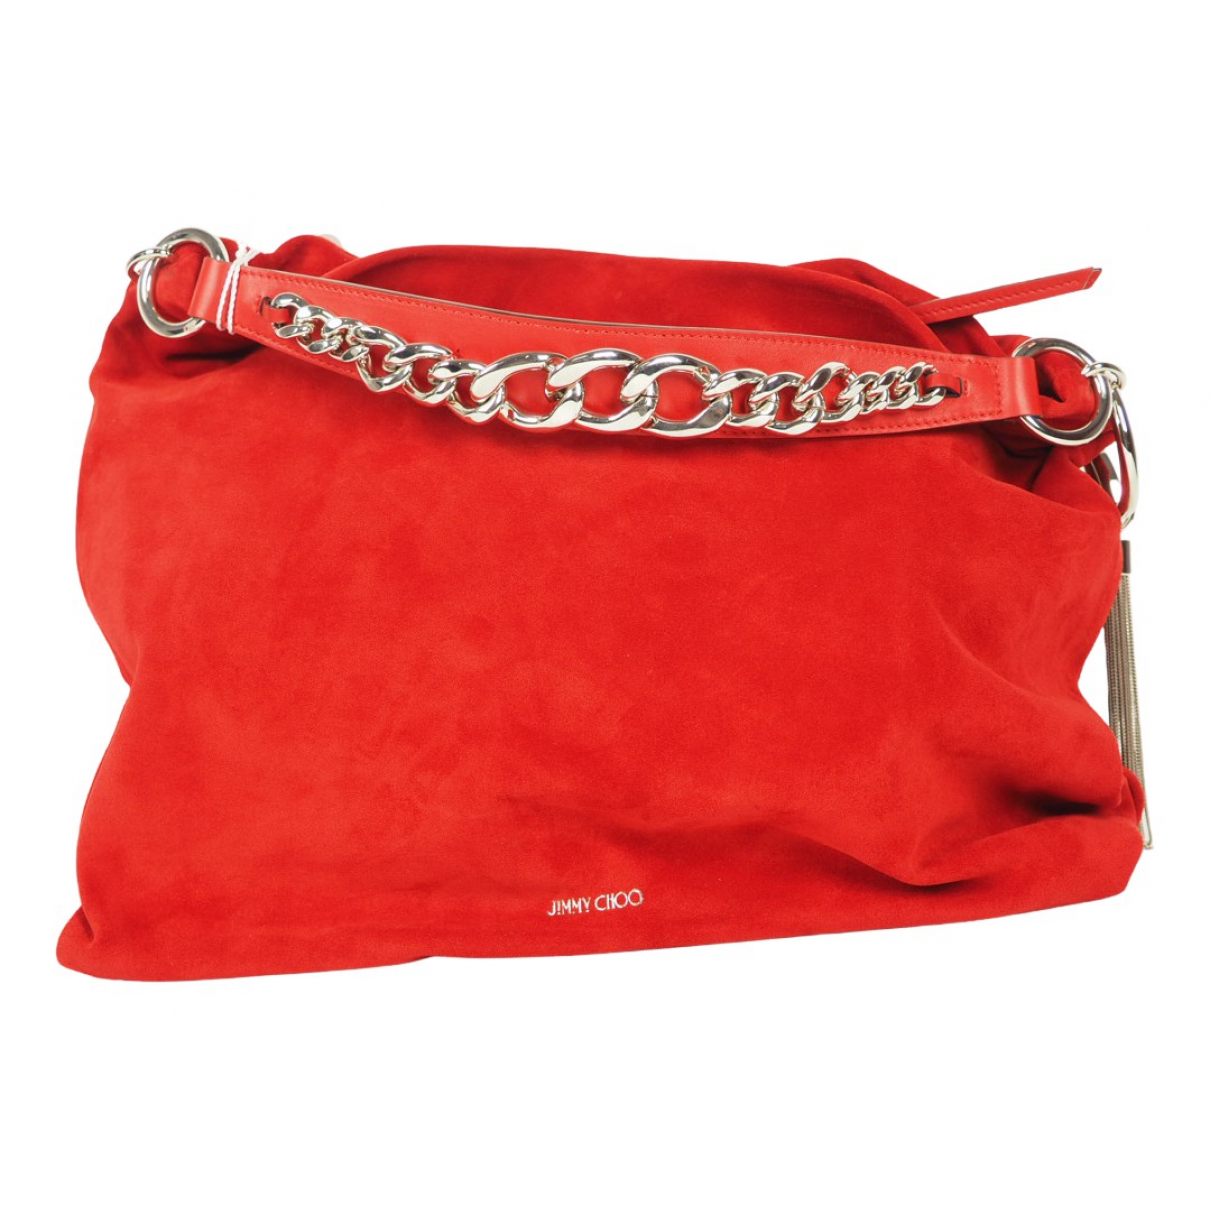 Jimmy Choo N Red Leather handbag for Women N